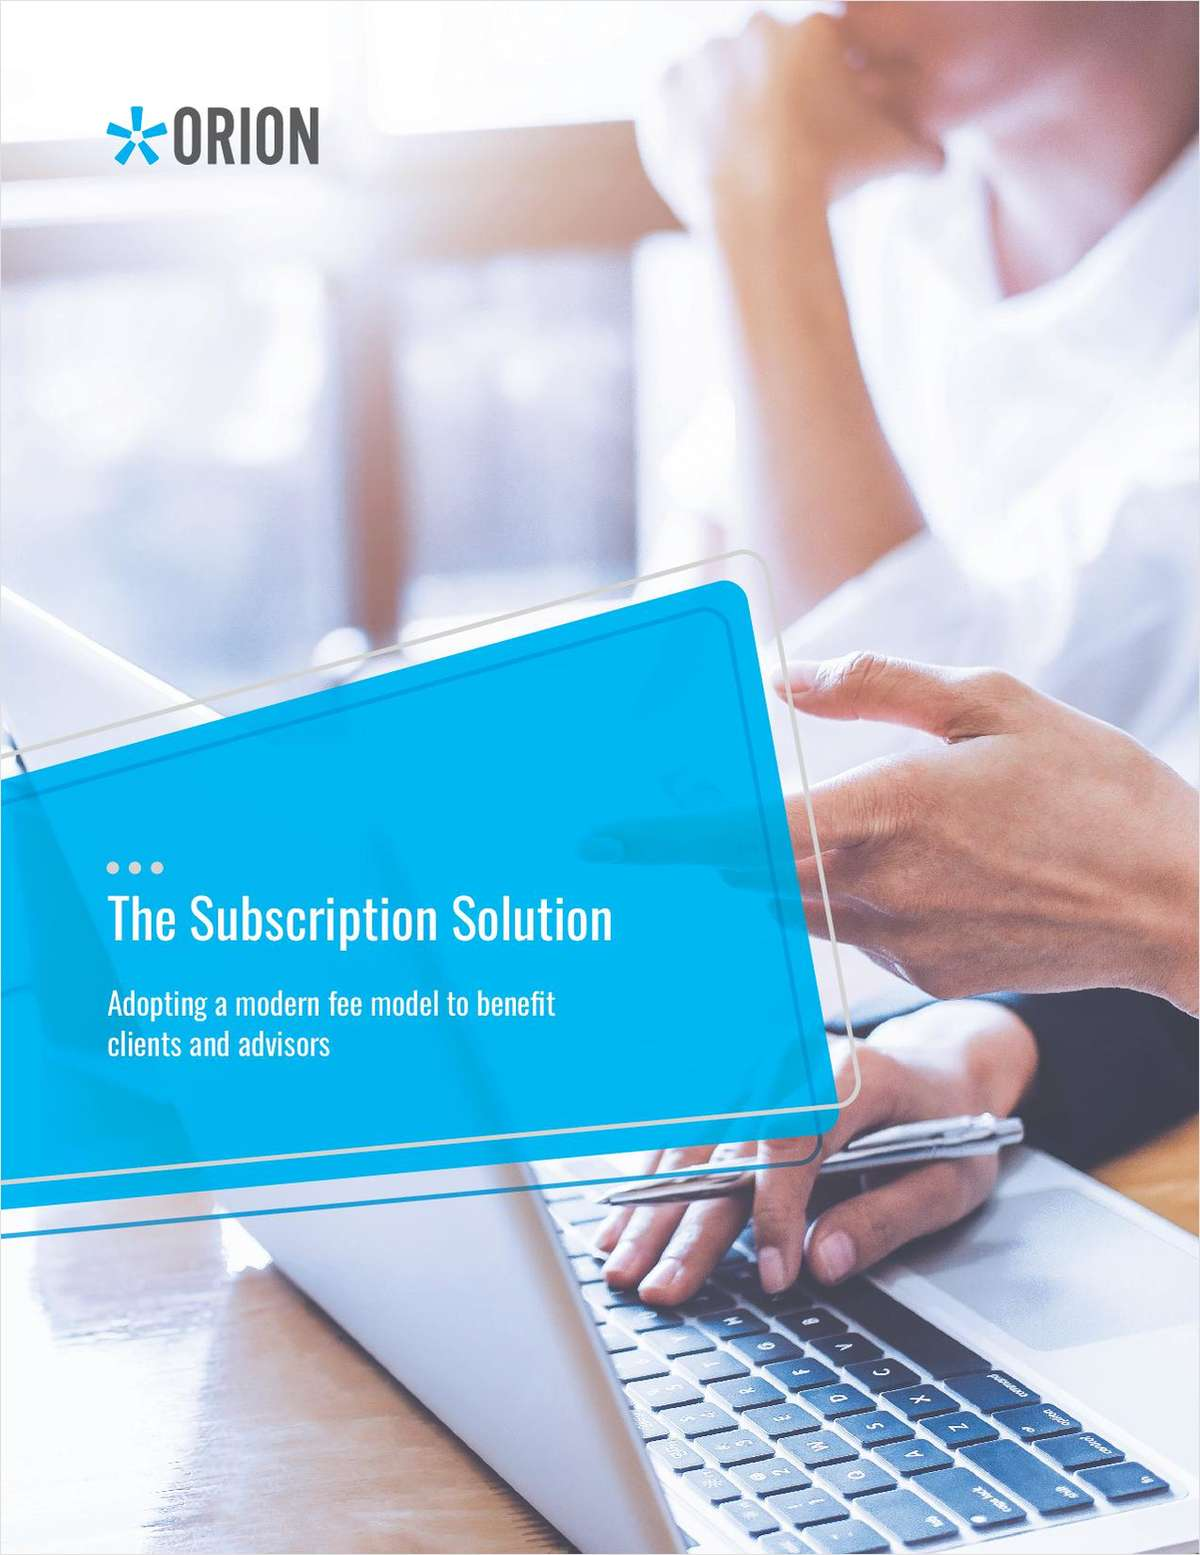 Subscription Services: Adopting a modern fee model benefits advisors and clients